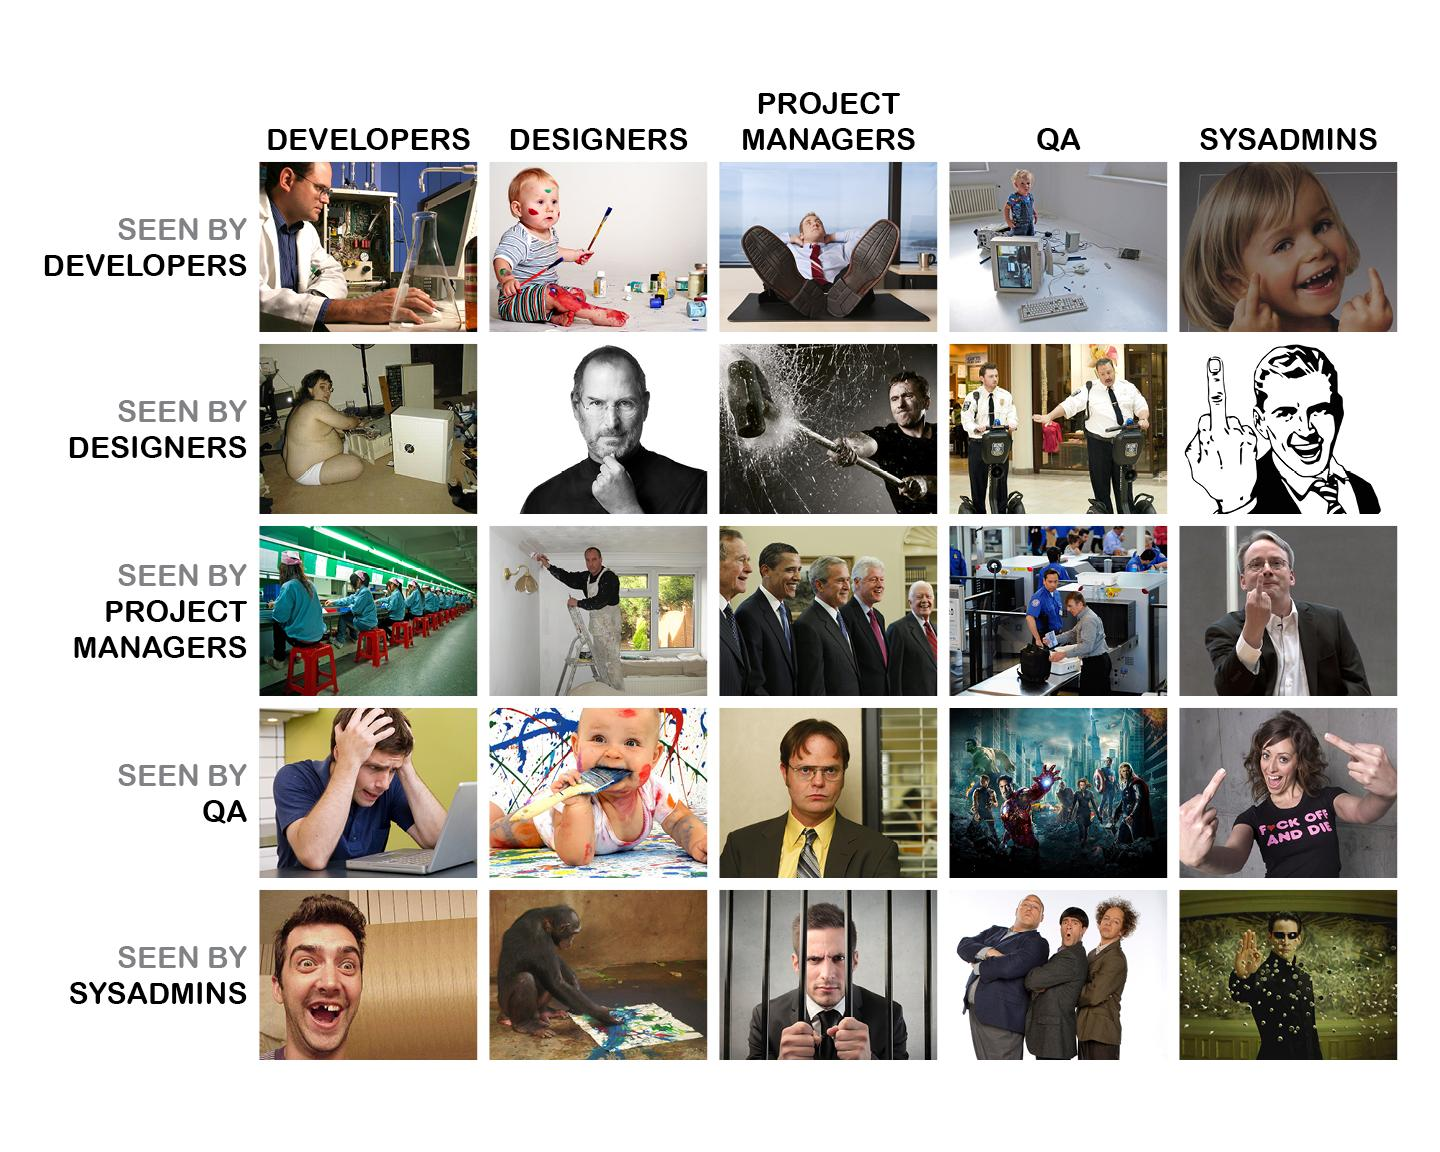 The Matrix of IT Business